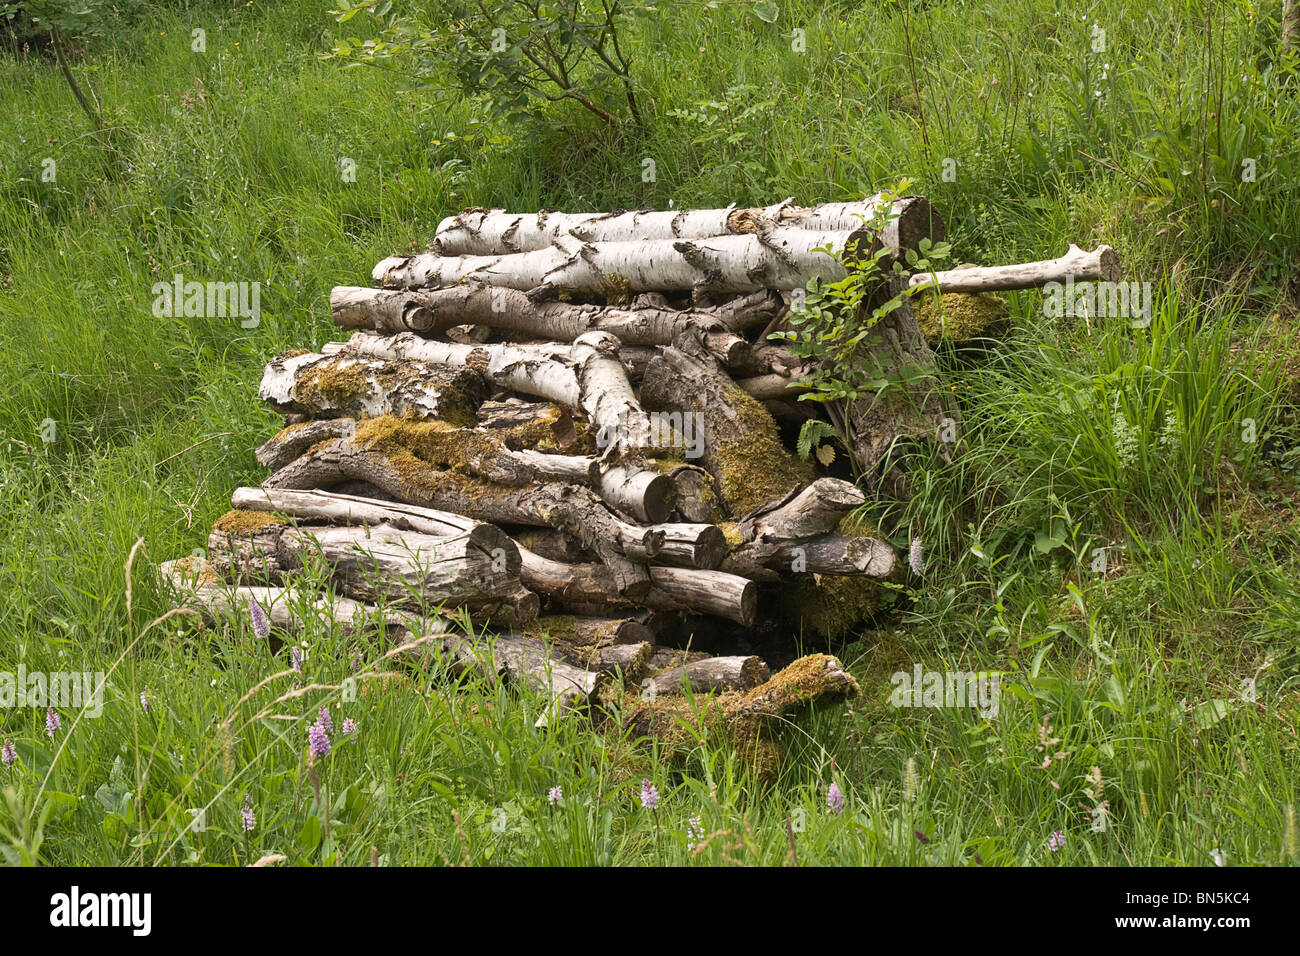 Wood pile (silver birch logs) left to rot and thereby encourage wildlife. - Stock Image